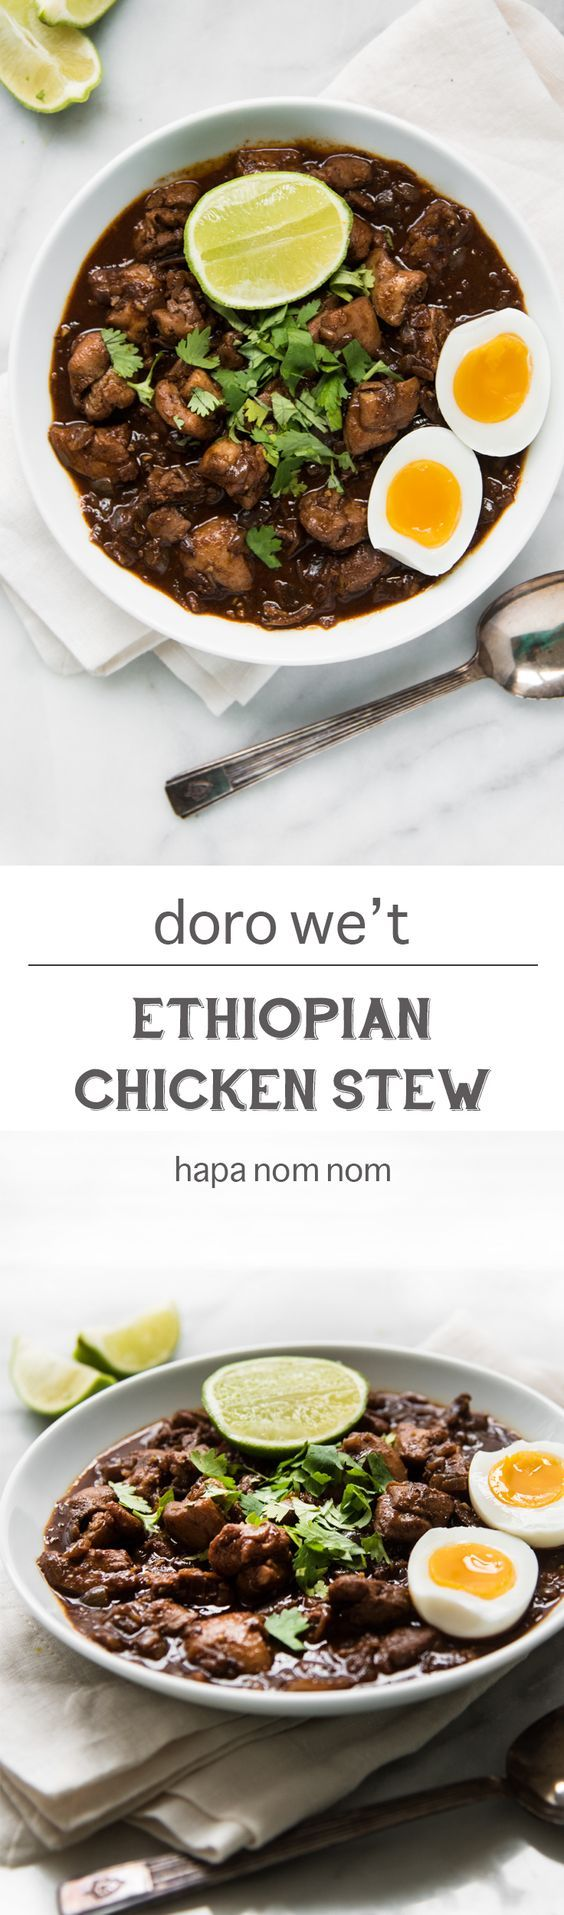 Doro We't is often referred to as the national dish of Ethiopia - it has layers of flavor, complex heat, and absolutely delicious